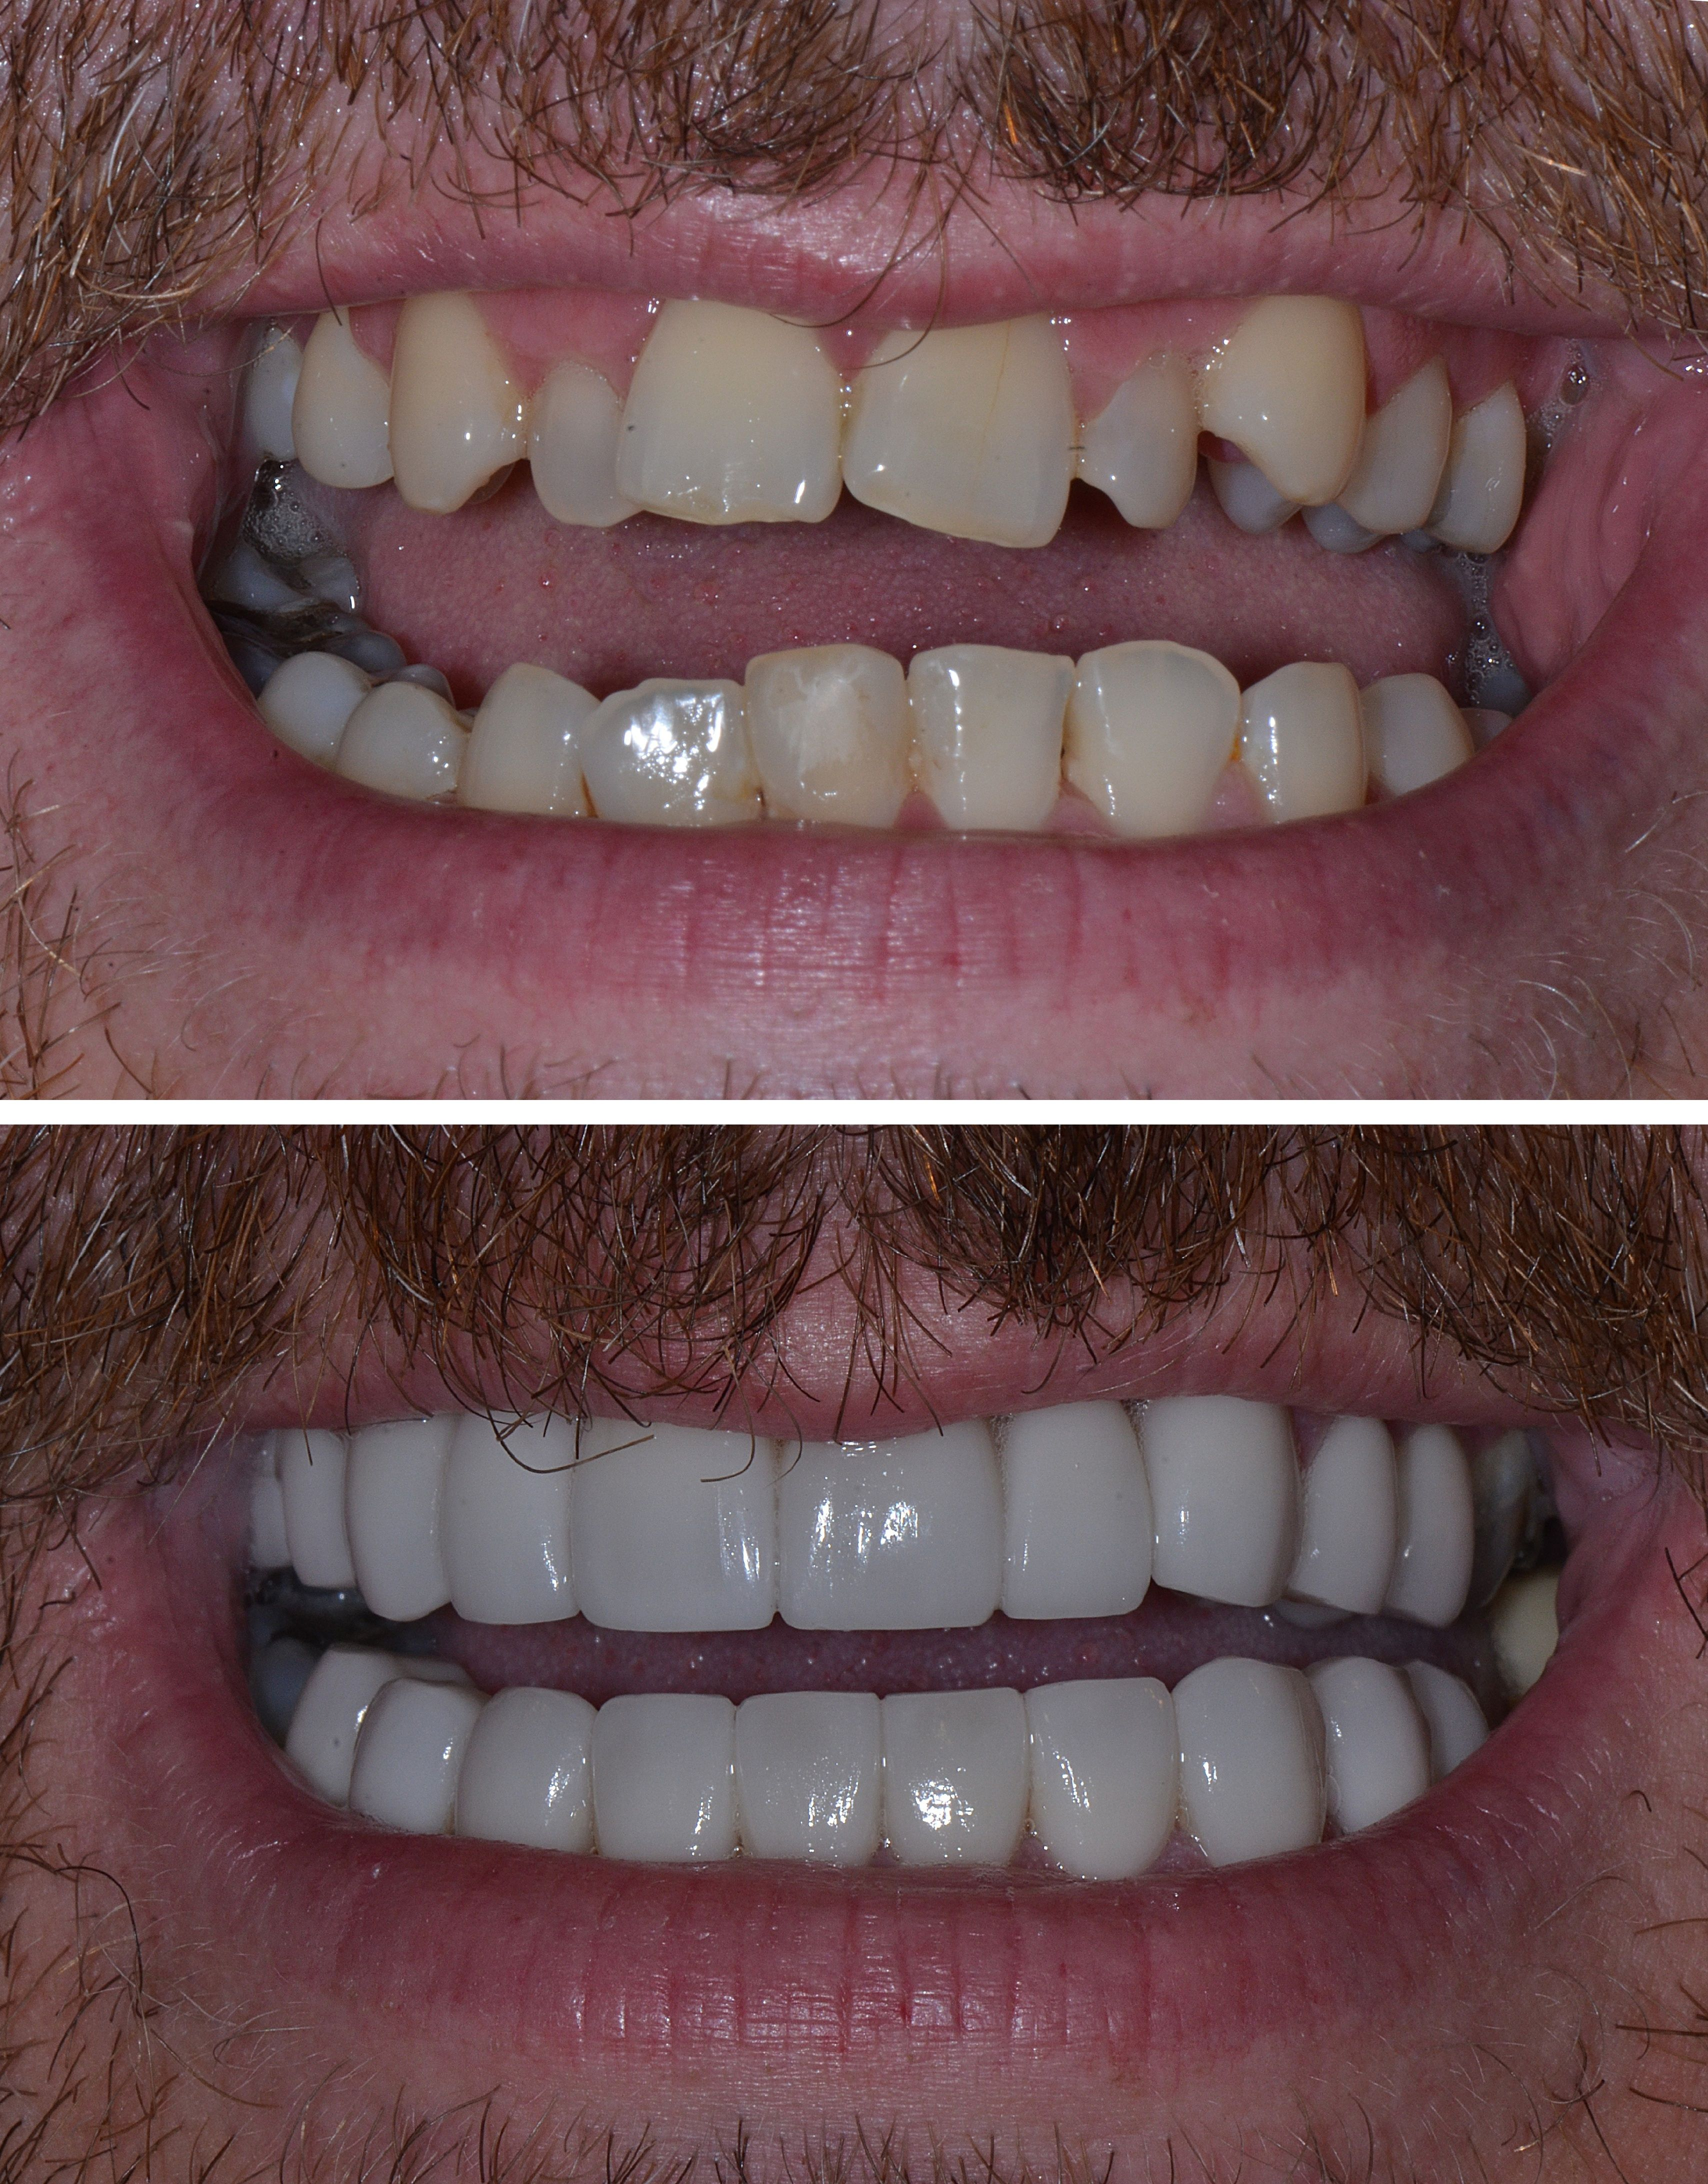 Befor and Agter photos of Eamonn's teeth. CrookedTeeth